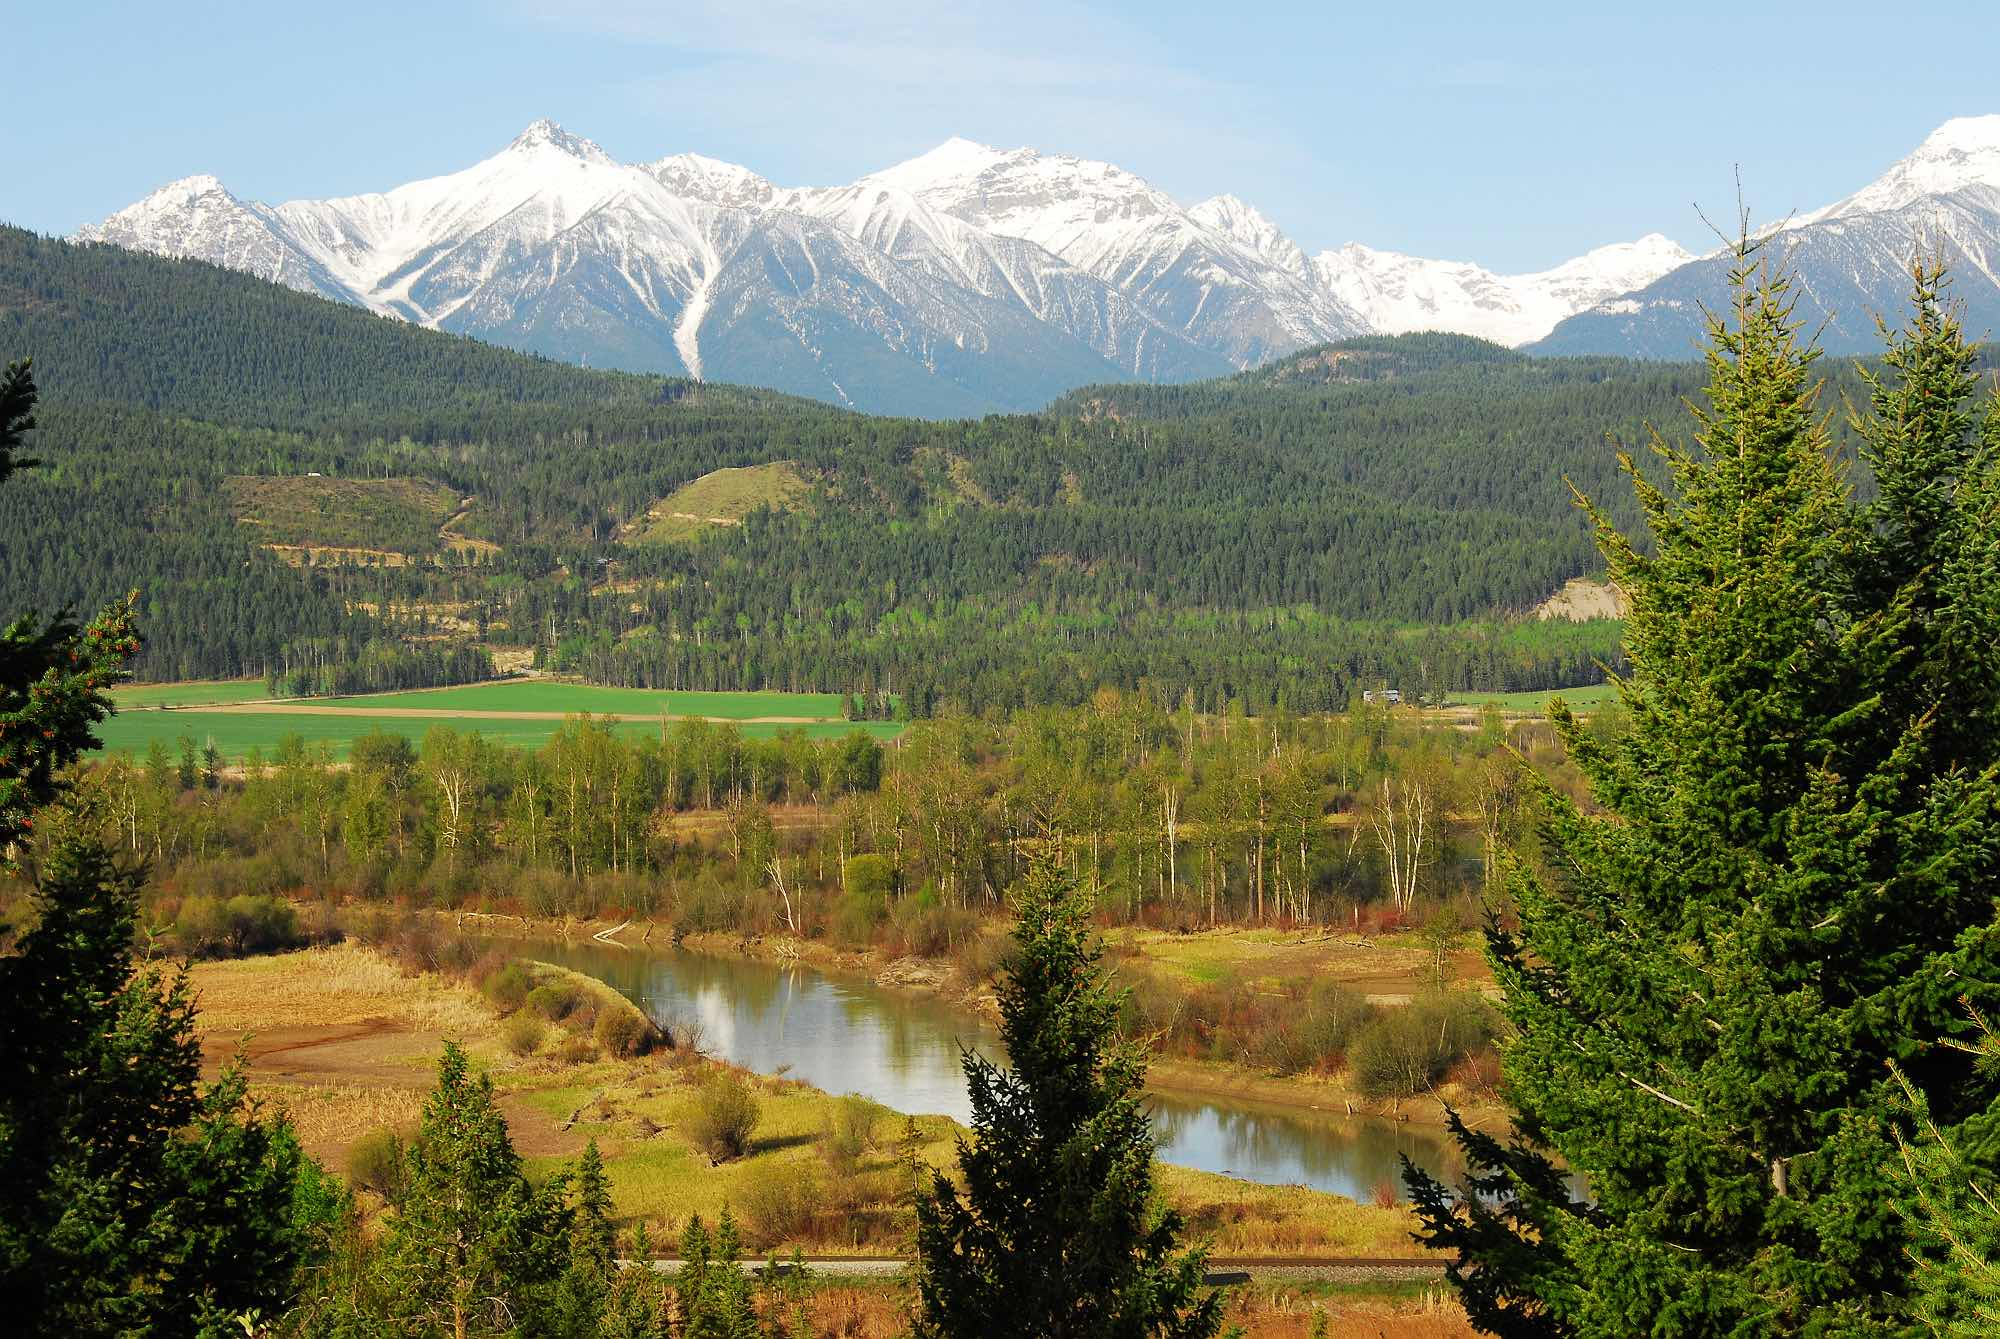 Invermere real estate listings: RV lots for sale in Invermere British Columbia